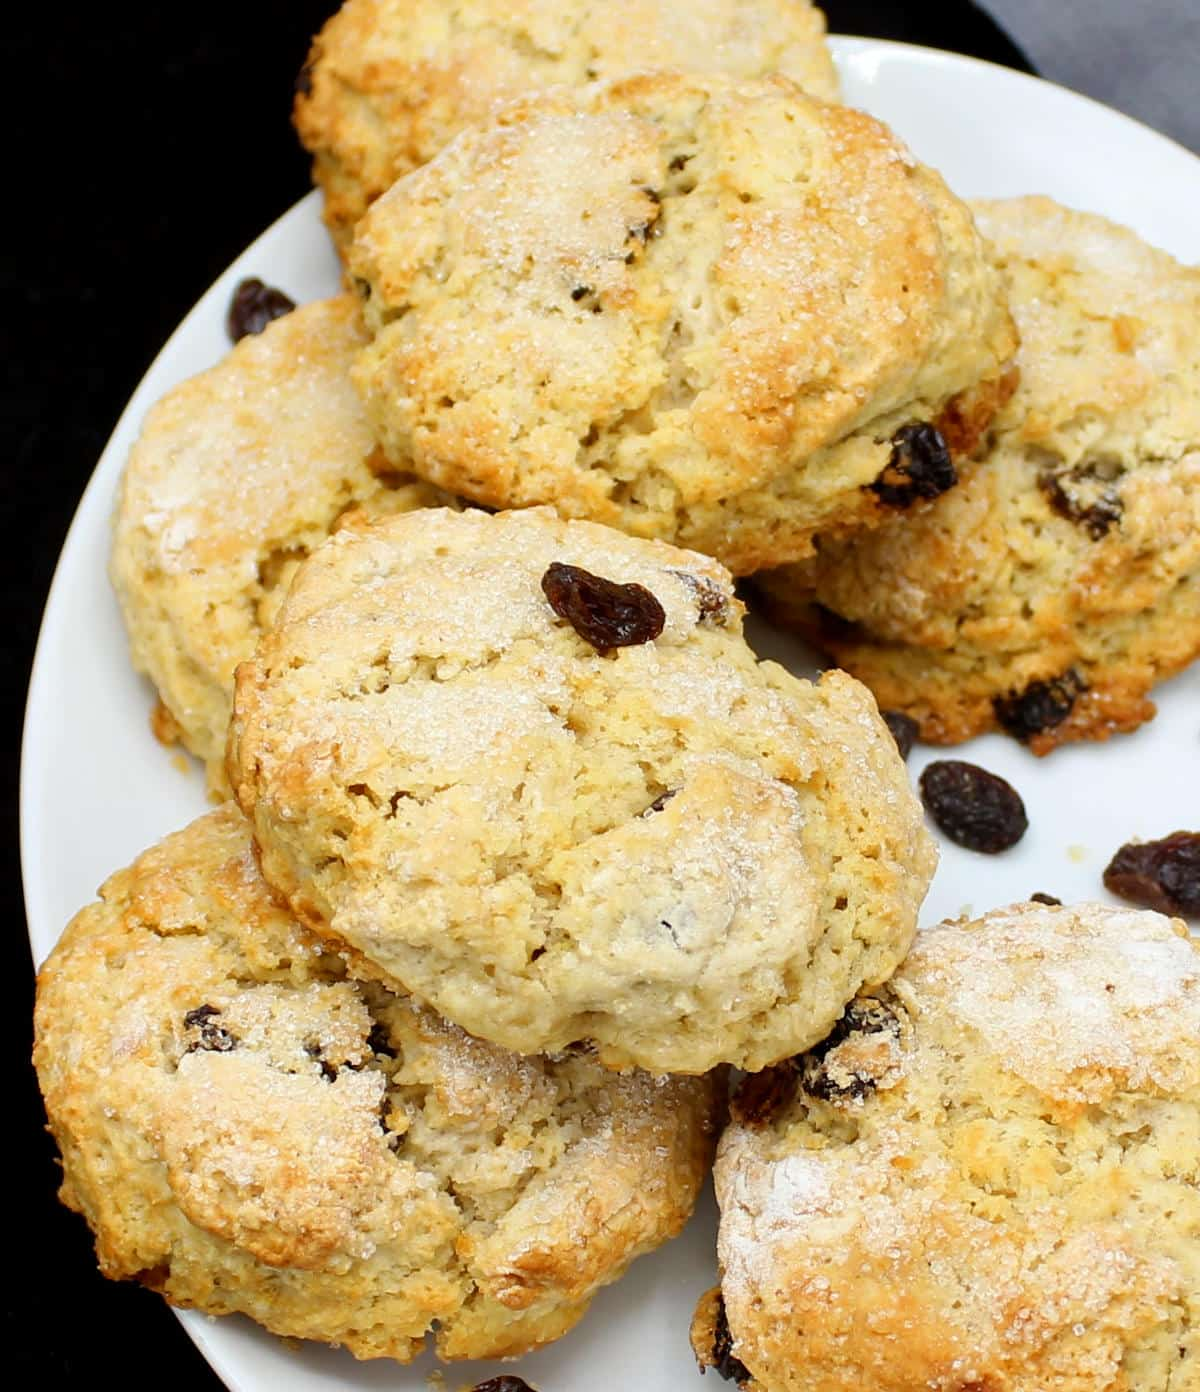 Golden, flaky vegan scones stacked on a white plate with currants.